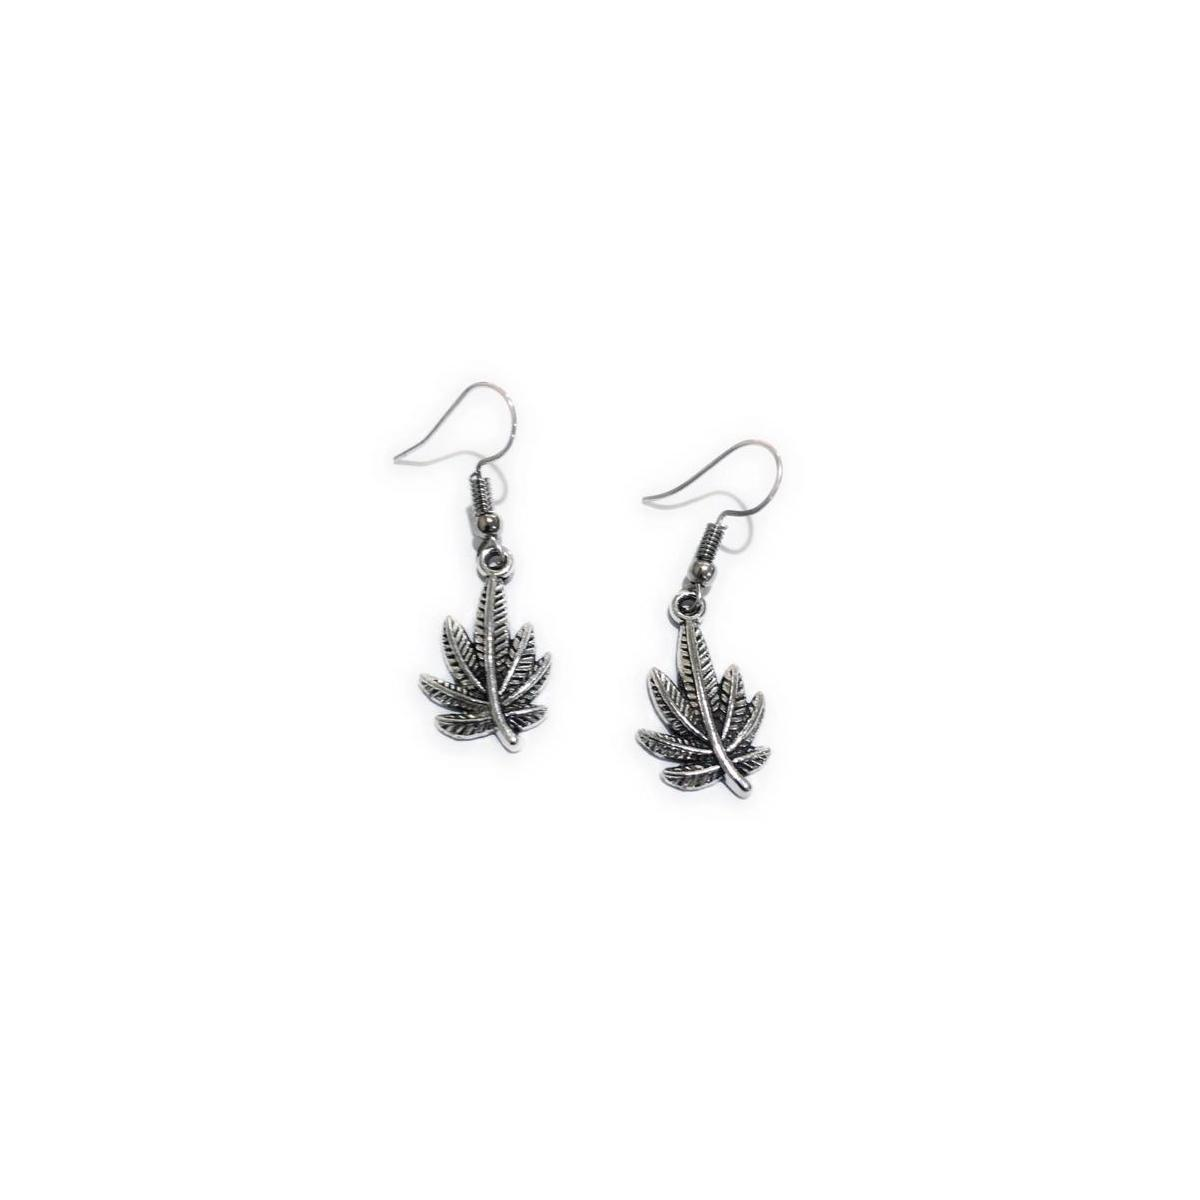 MADARI FASHIONS - Cannabis Earrings